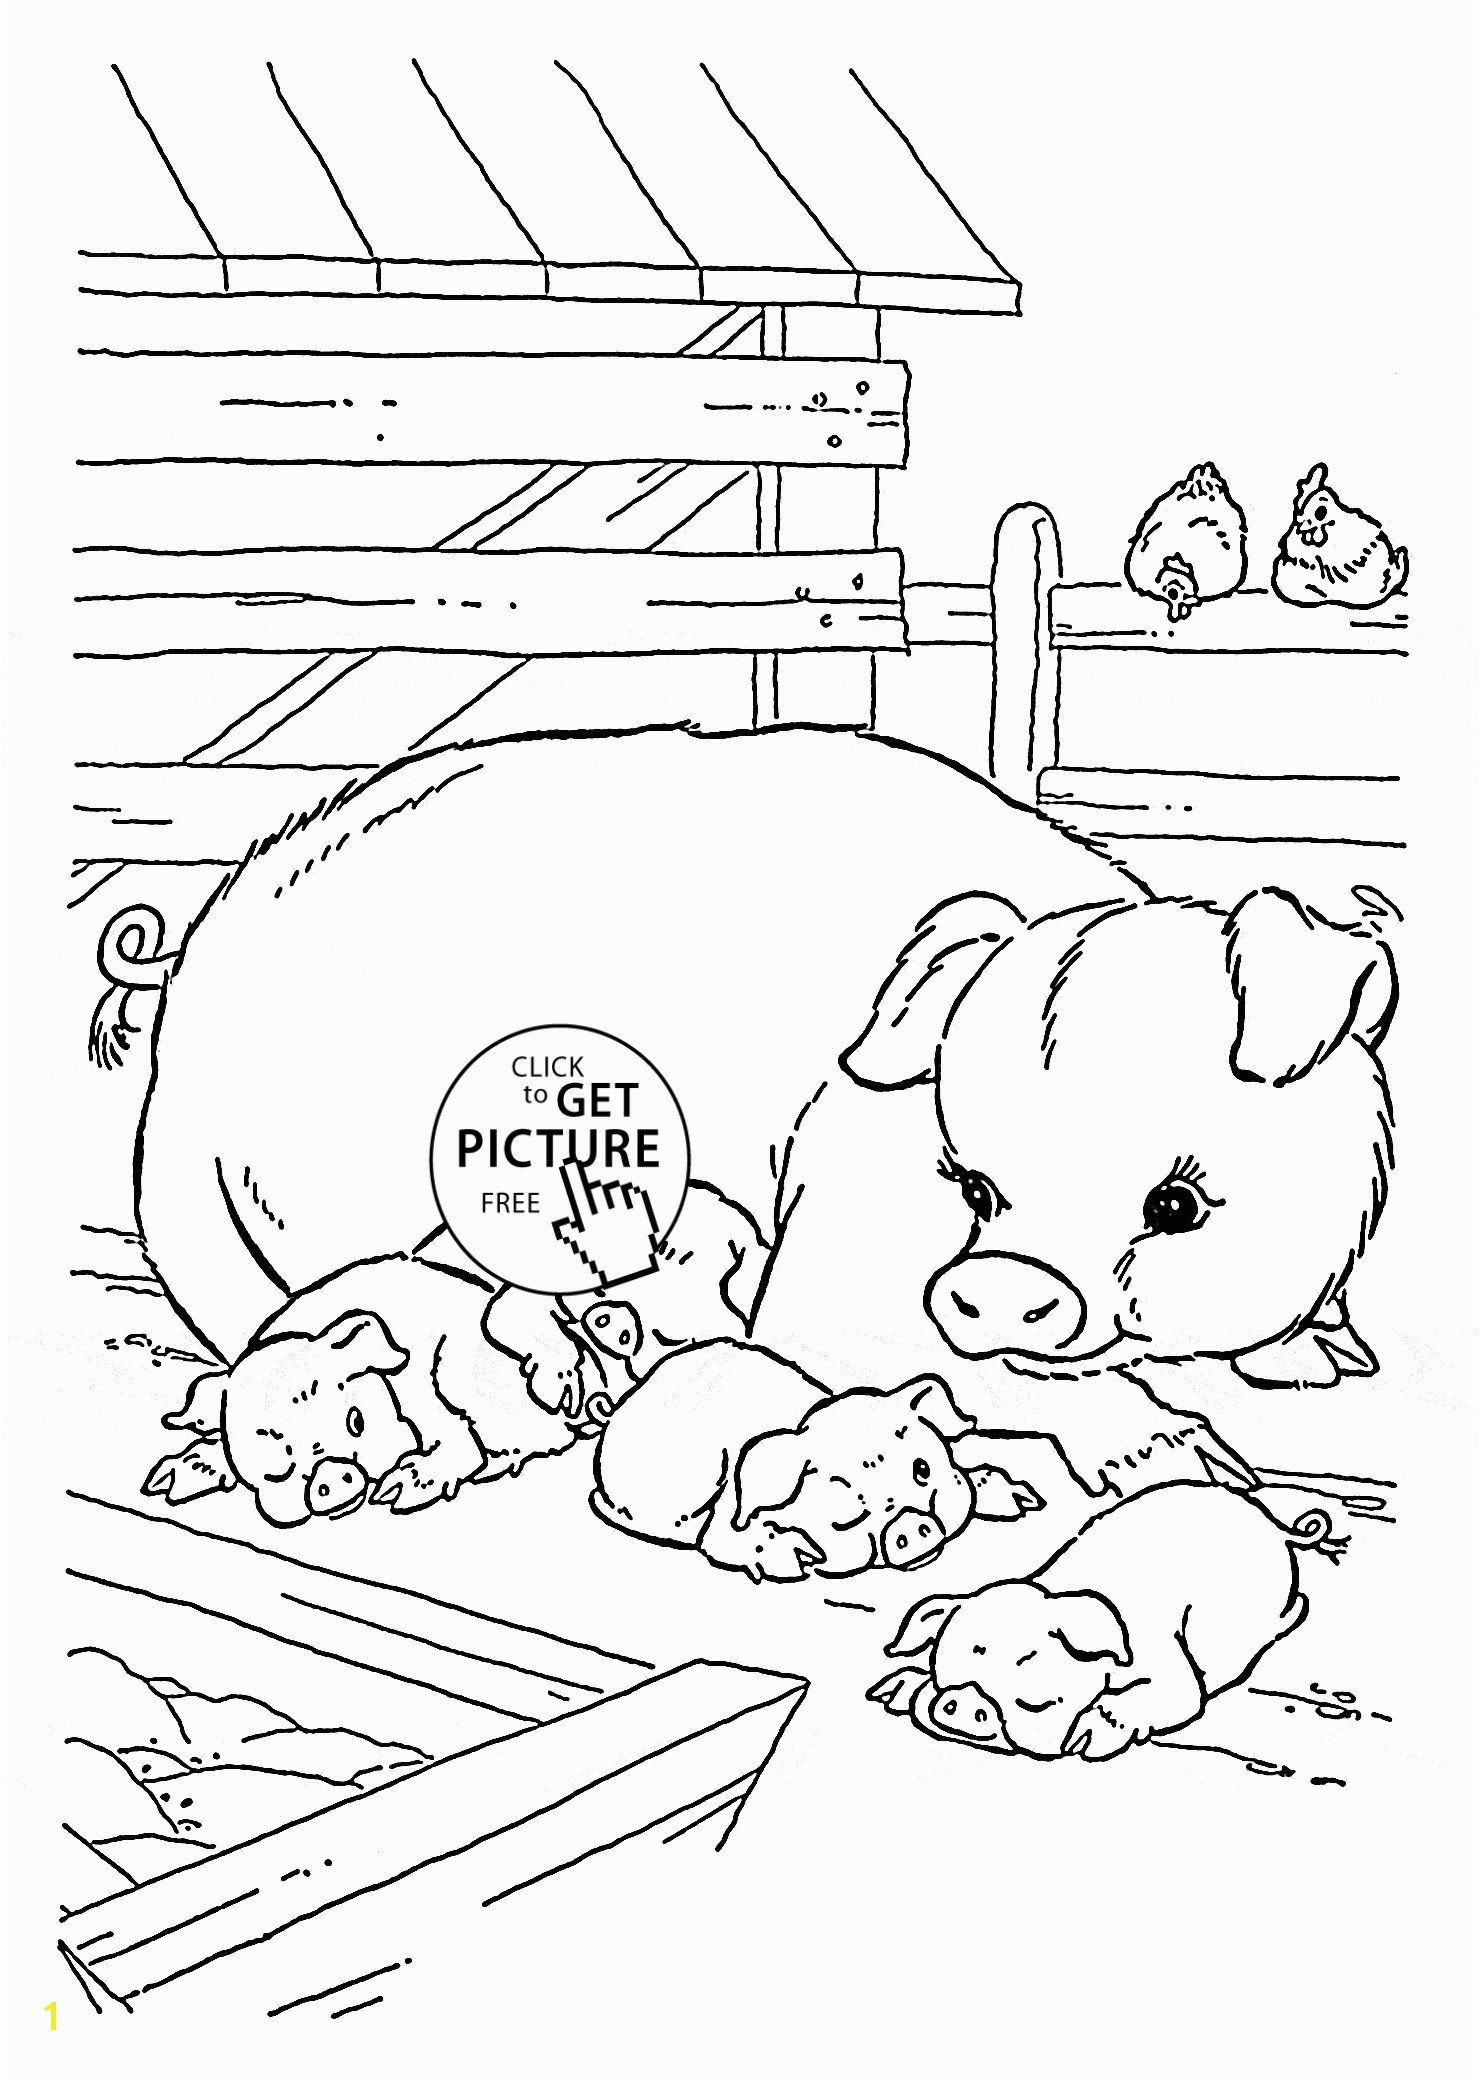 Cute Pigs coloring page for kids animal coloring pages printables free